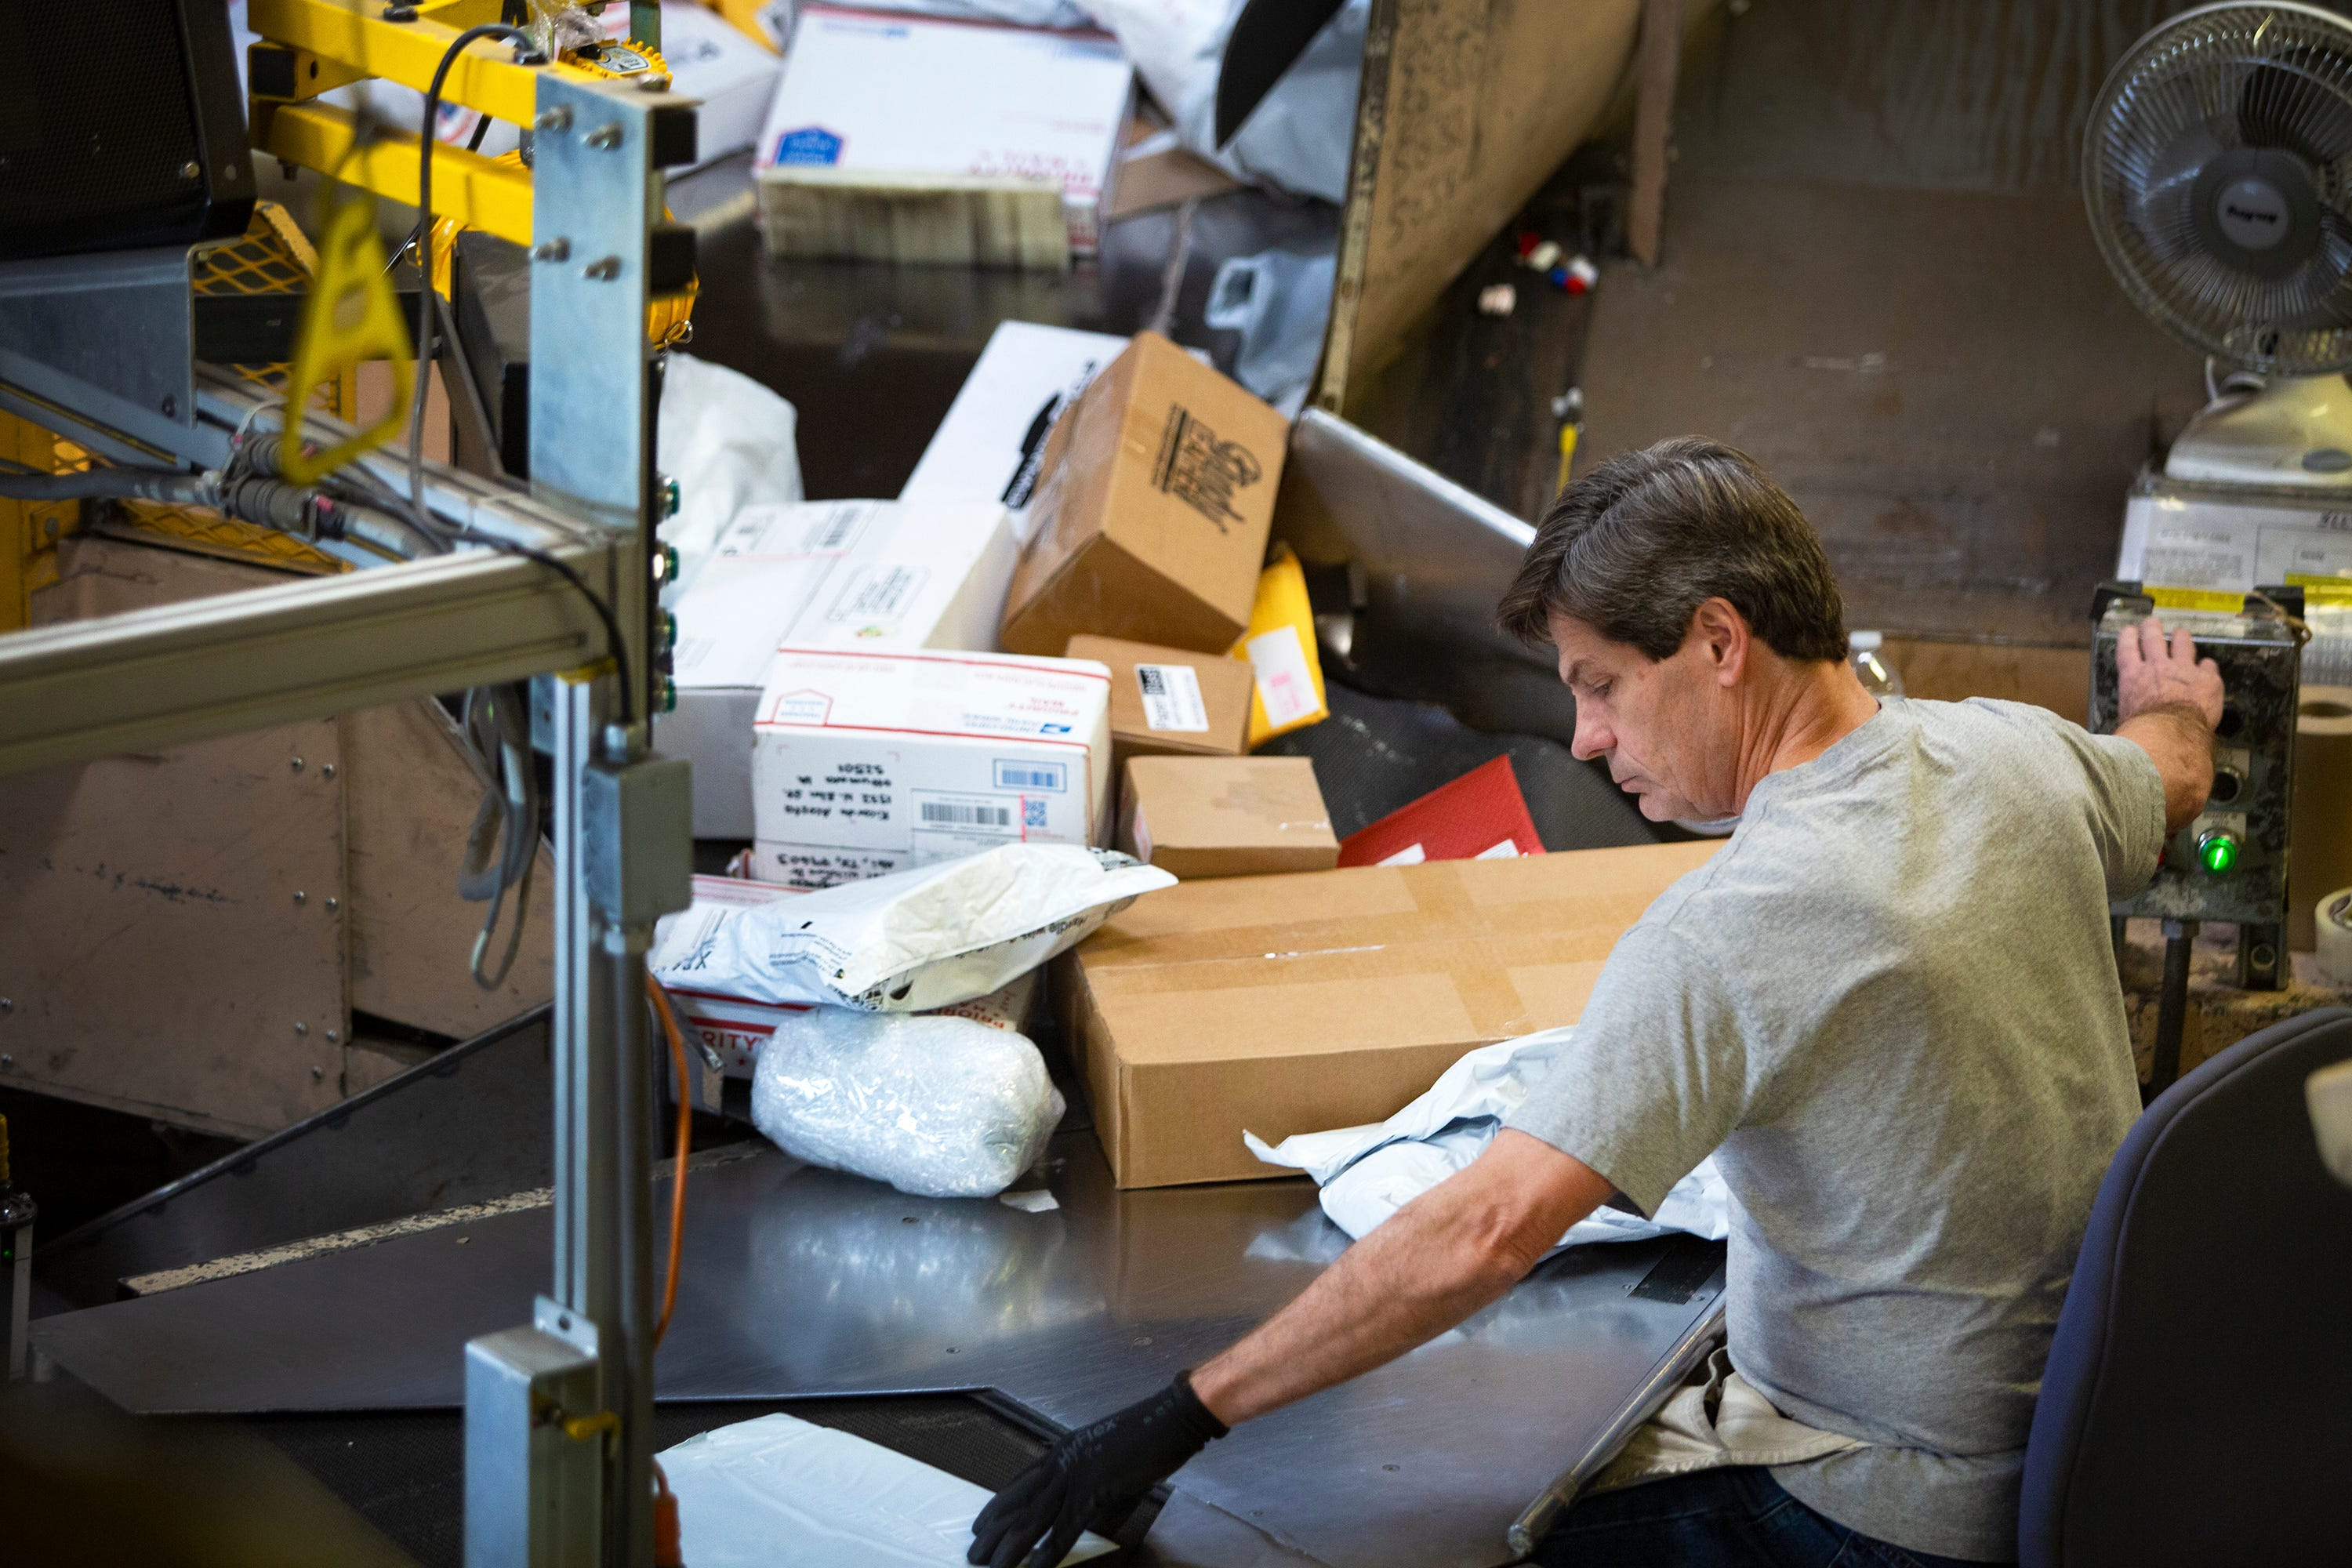 Photos: Behind the Scenes of Des Moines' US Postal Service